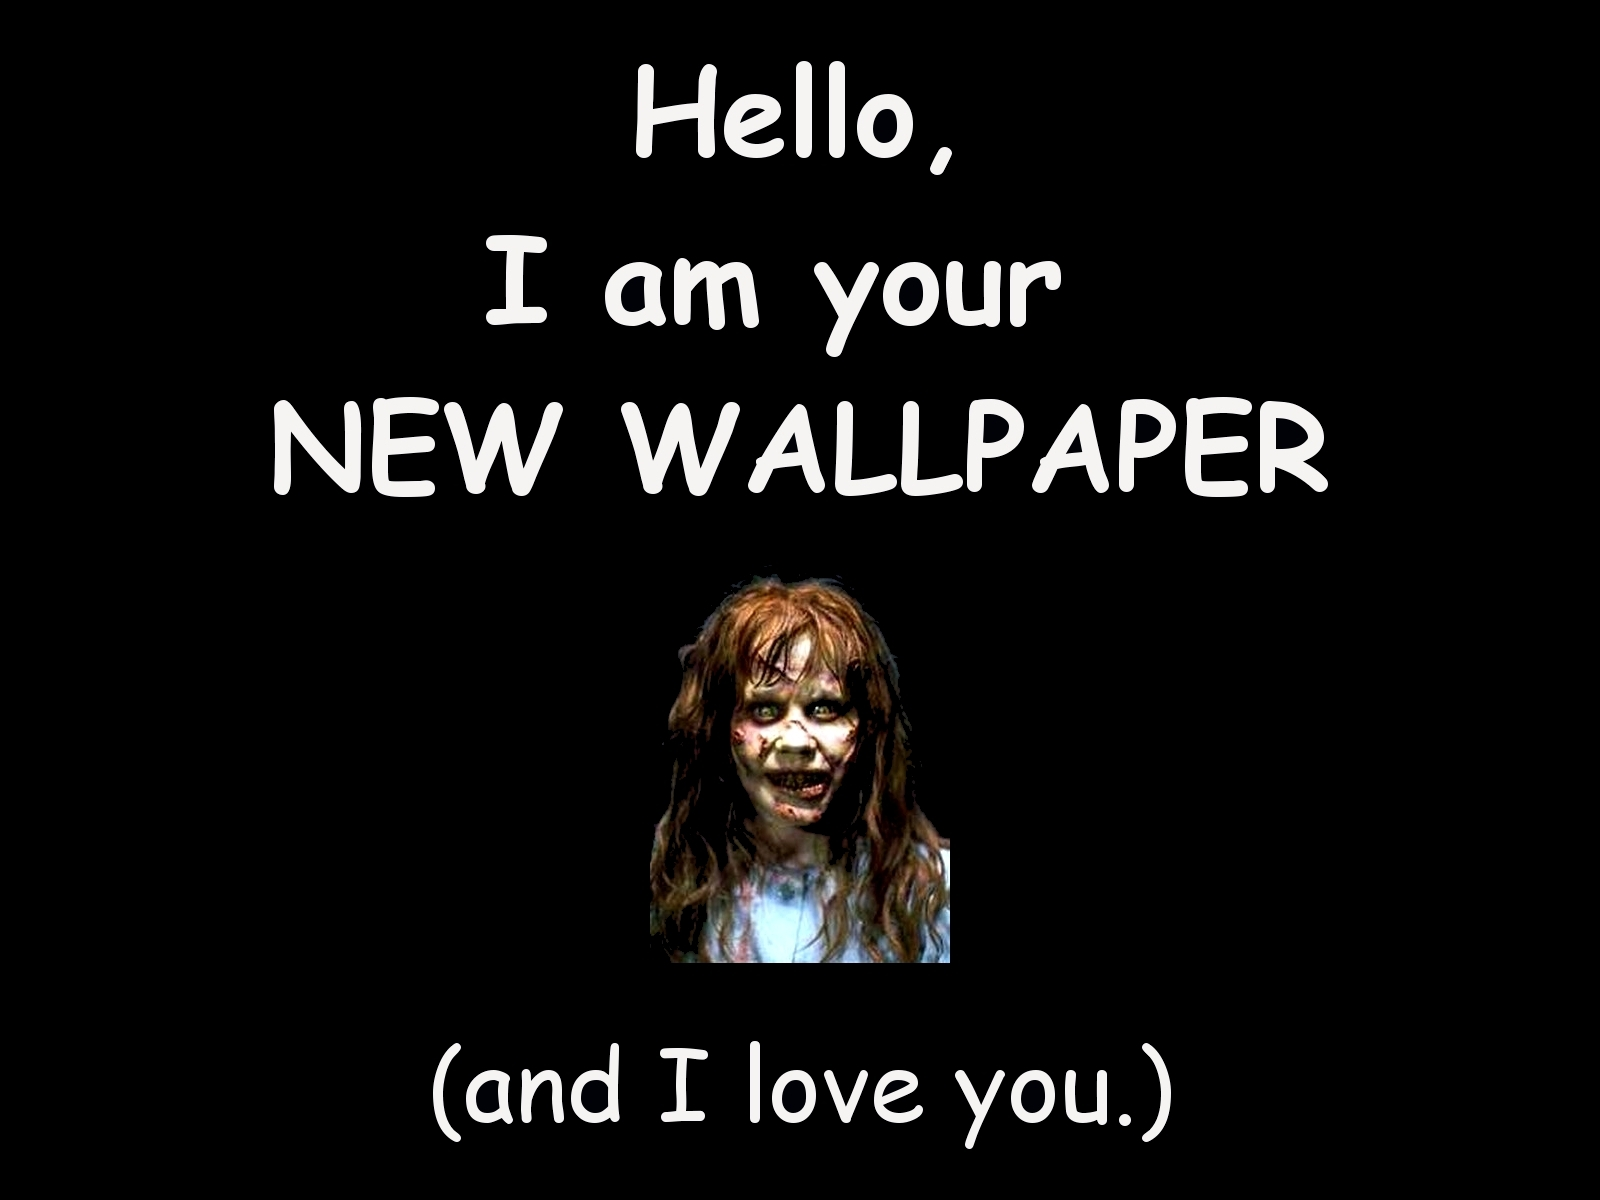 new wallpaper best funny wallpapers share this funny wallpaper 1600x1200